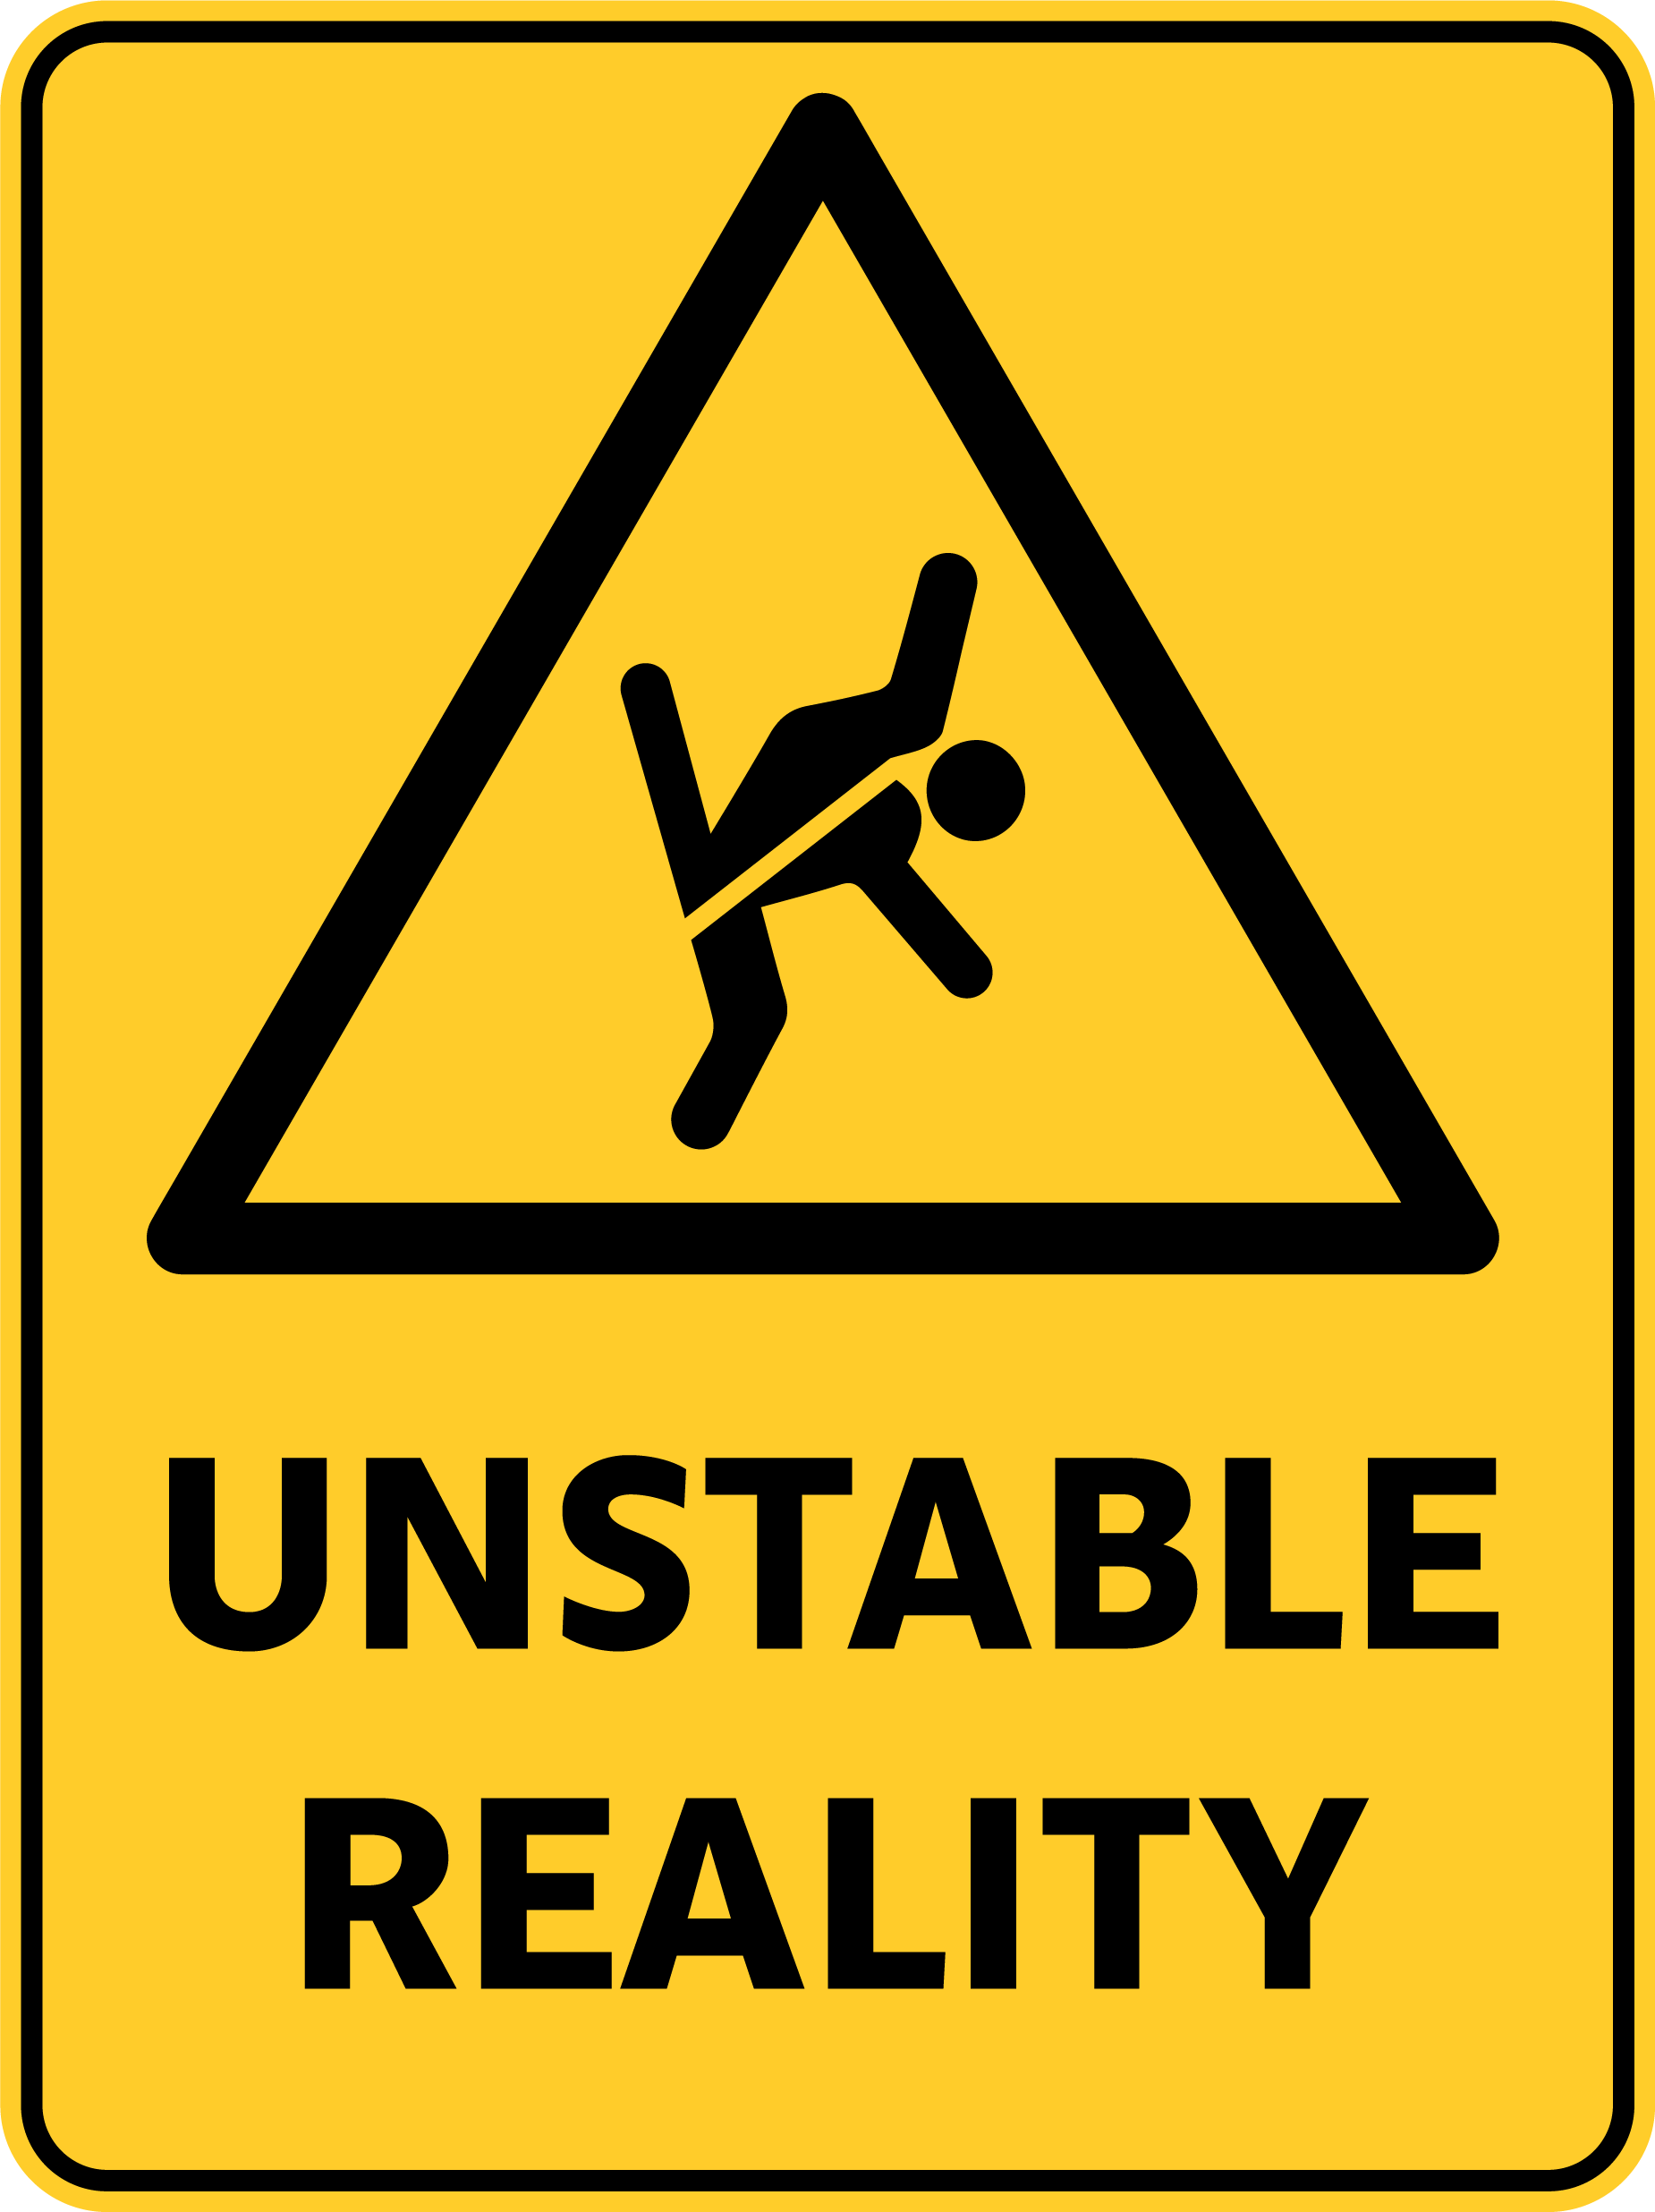 Unstable%20reality.png